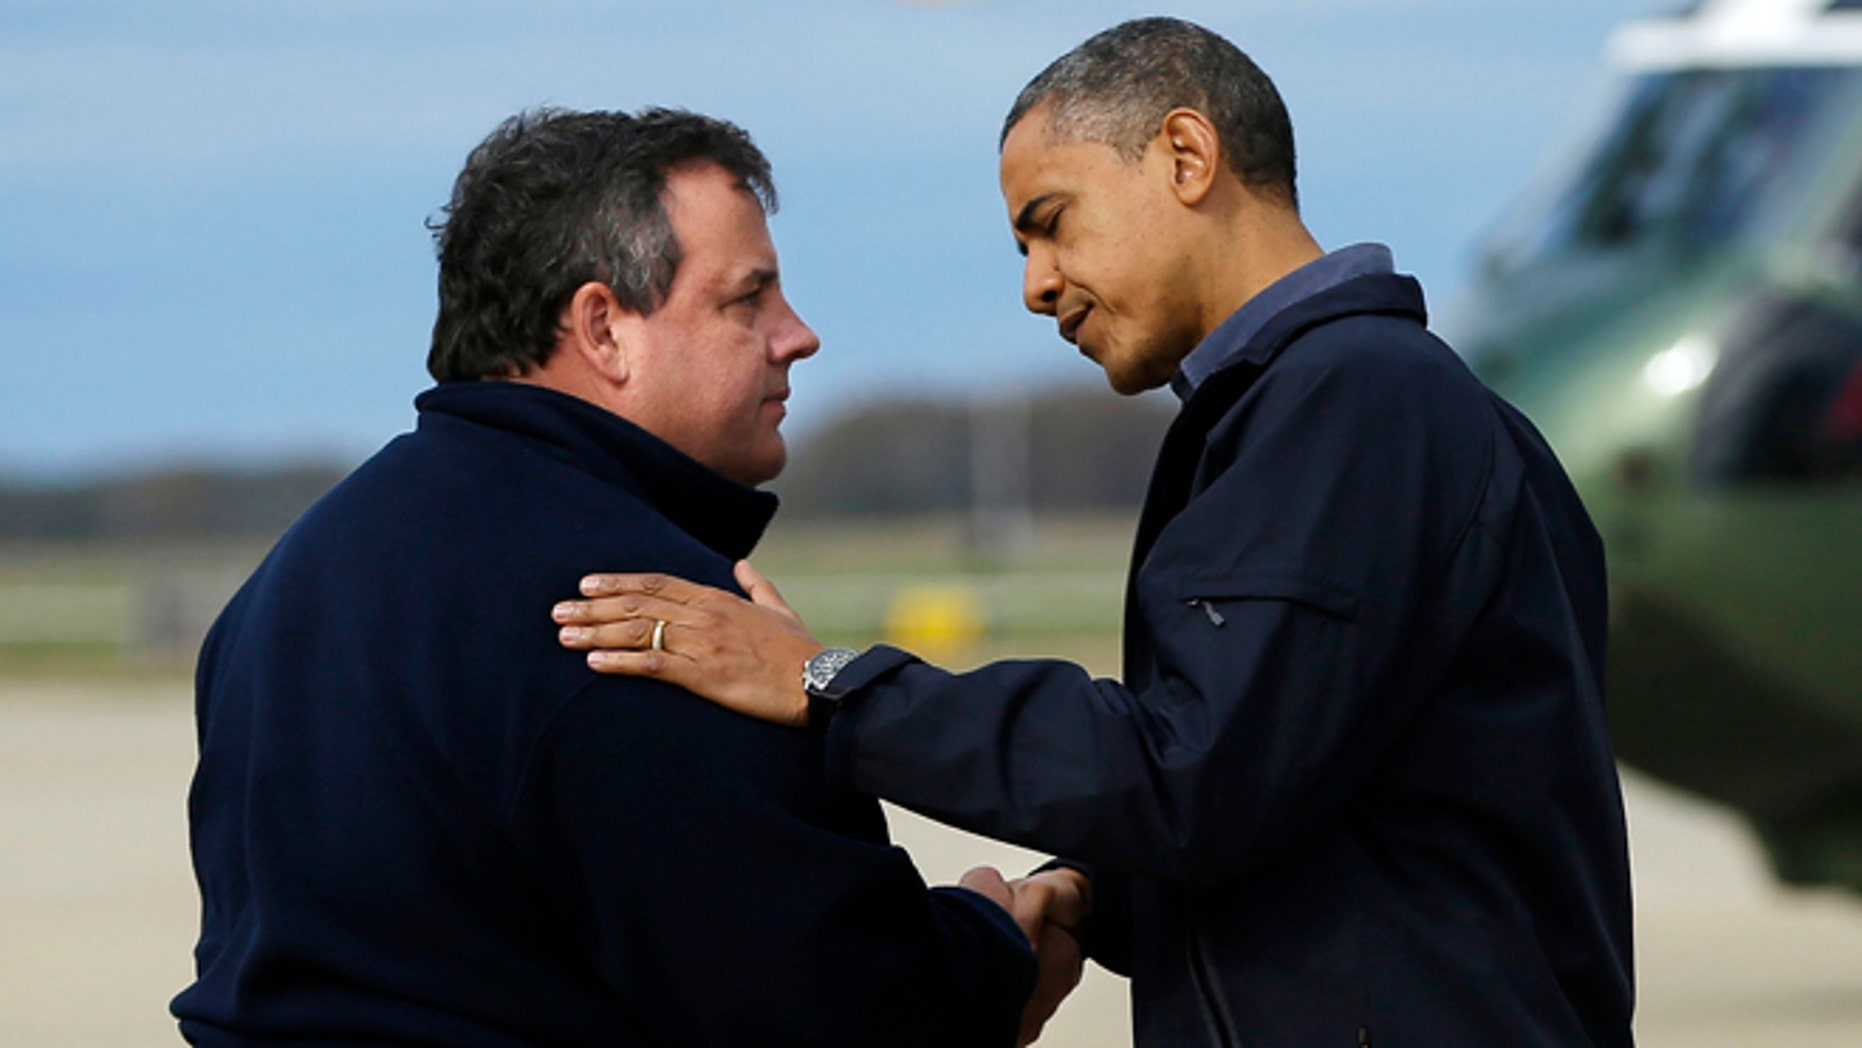 Oct. 31, 2012: President Barack Obama is greeted by New Jersey Gov. Chris Christie upon his arrival at Atlantic City International Airport in Atlantic City, NJ.